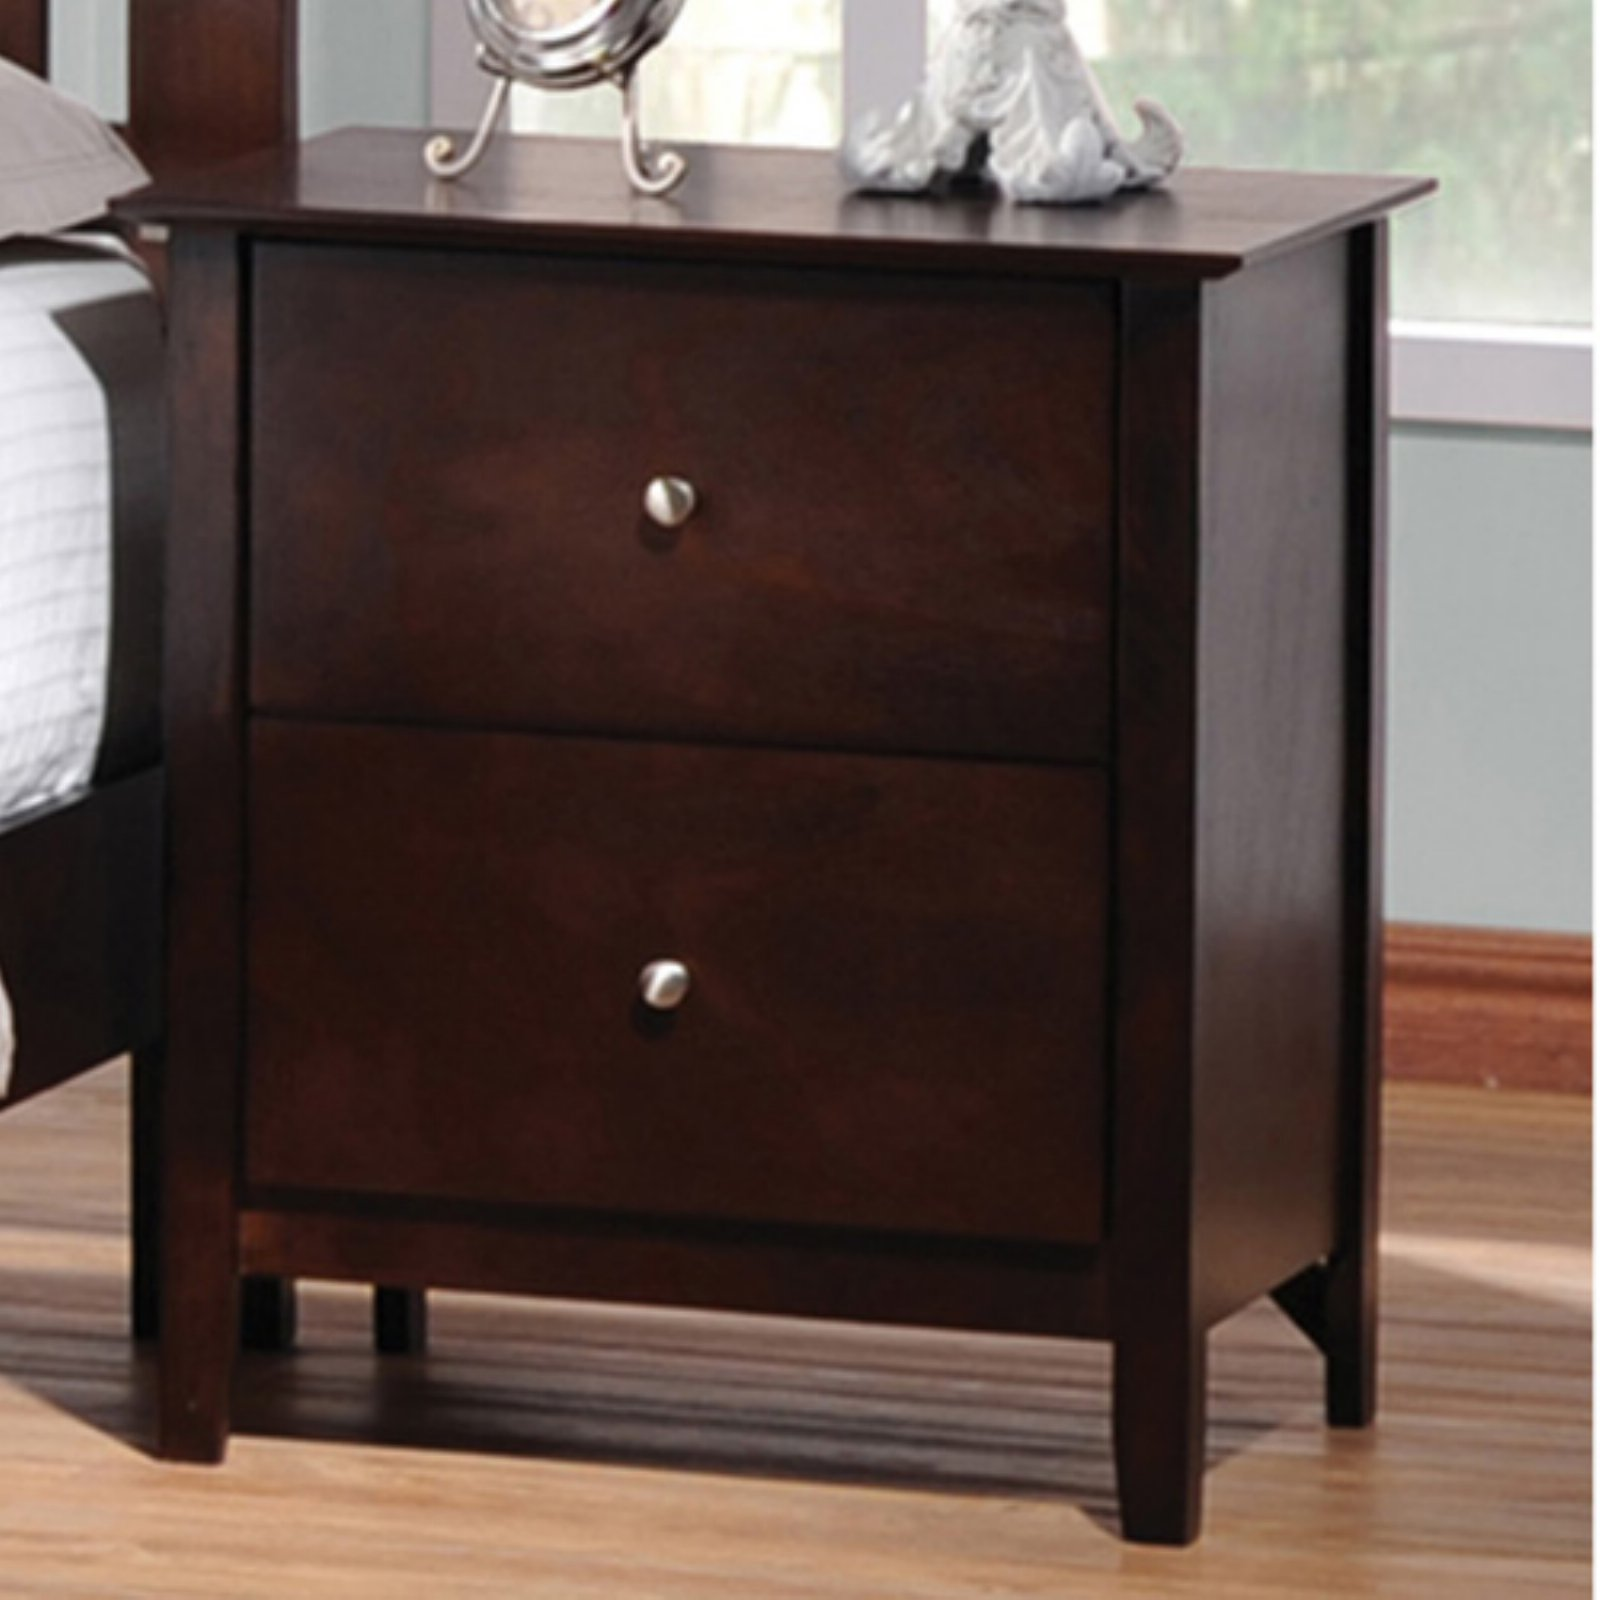 Coaster Furniture Tia 2 Drawer Nightstand by Coaster Company